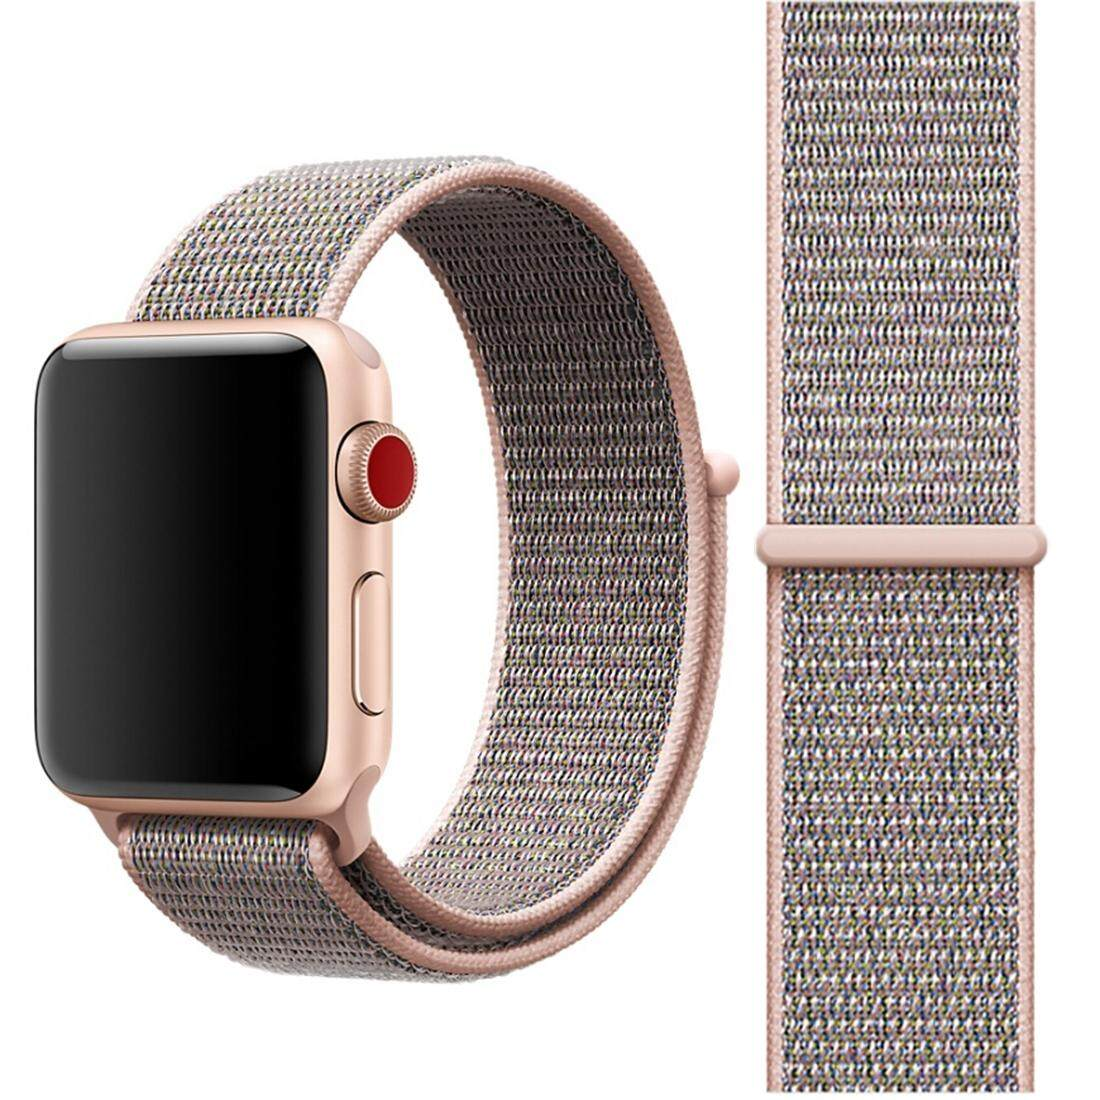 Buy For Apple Watch Series 3 2 1 42Mm Simple Fashion Nylon Watch Strap With Magic Stick Pink Intl Cheap On Hong Kong Sar China